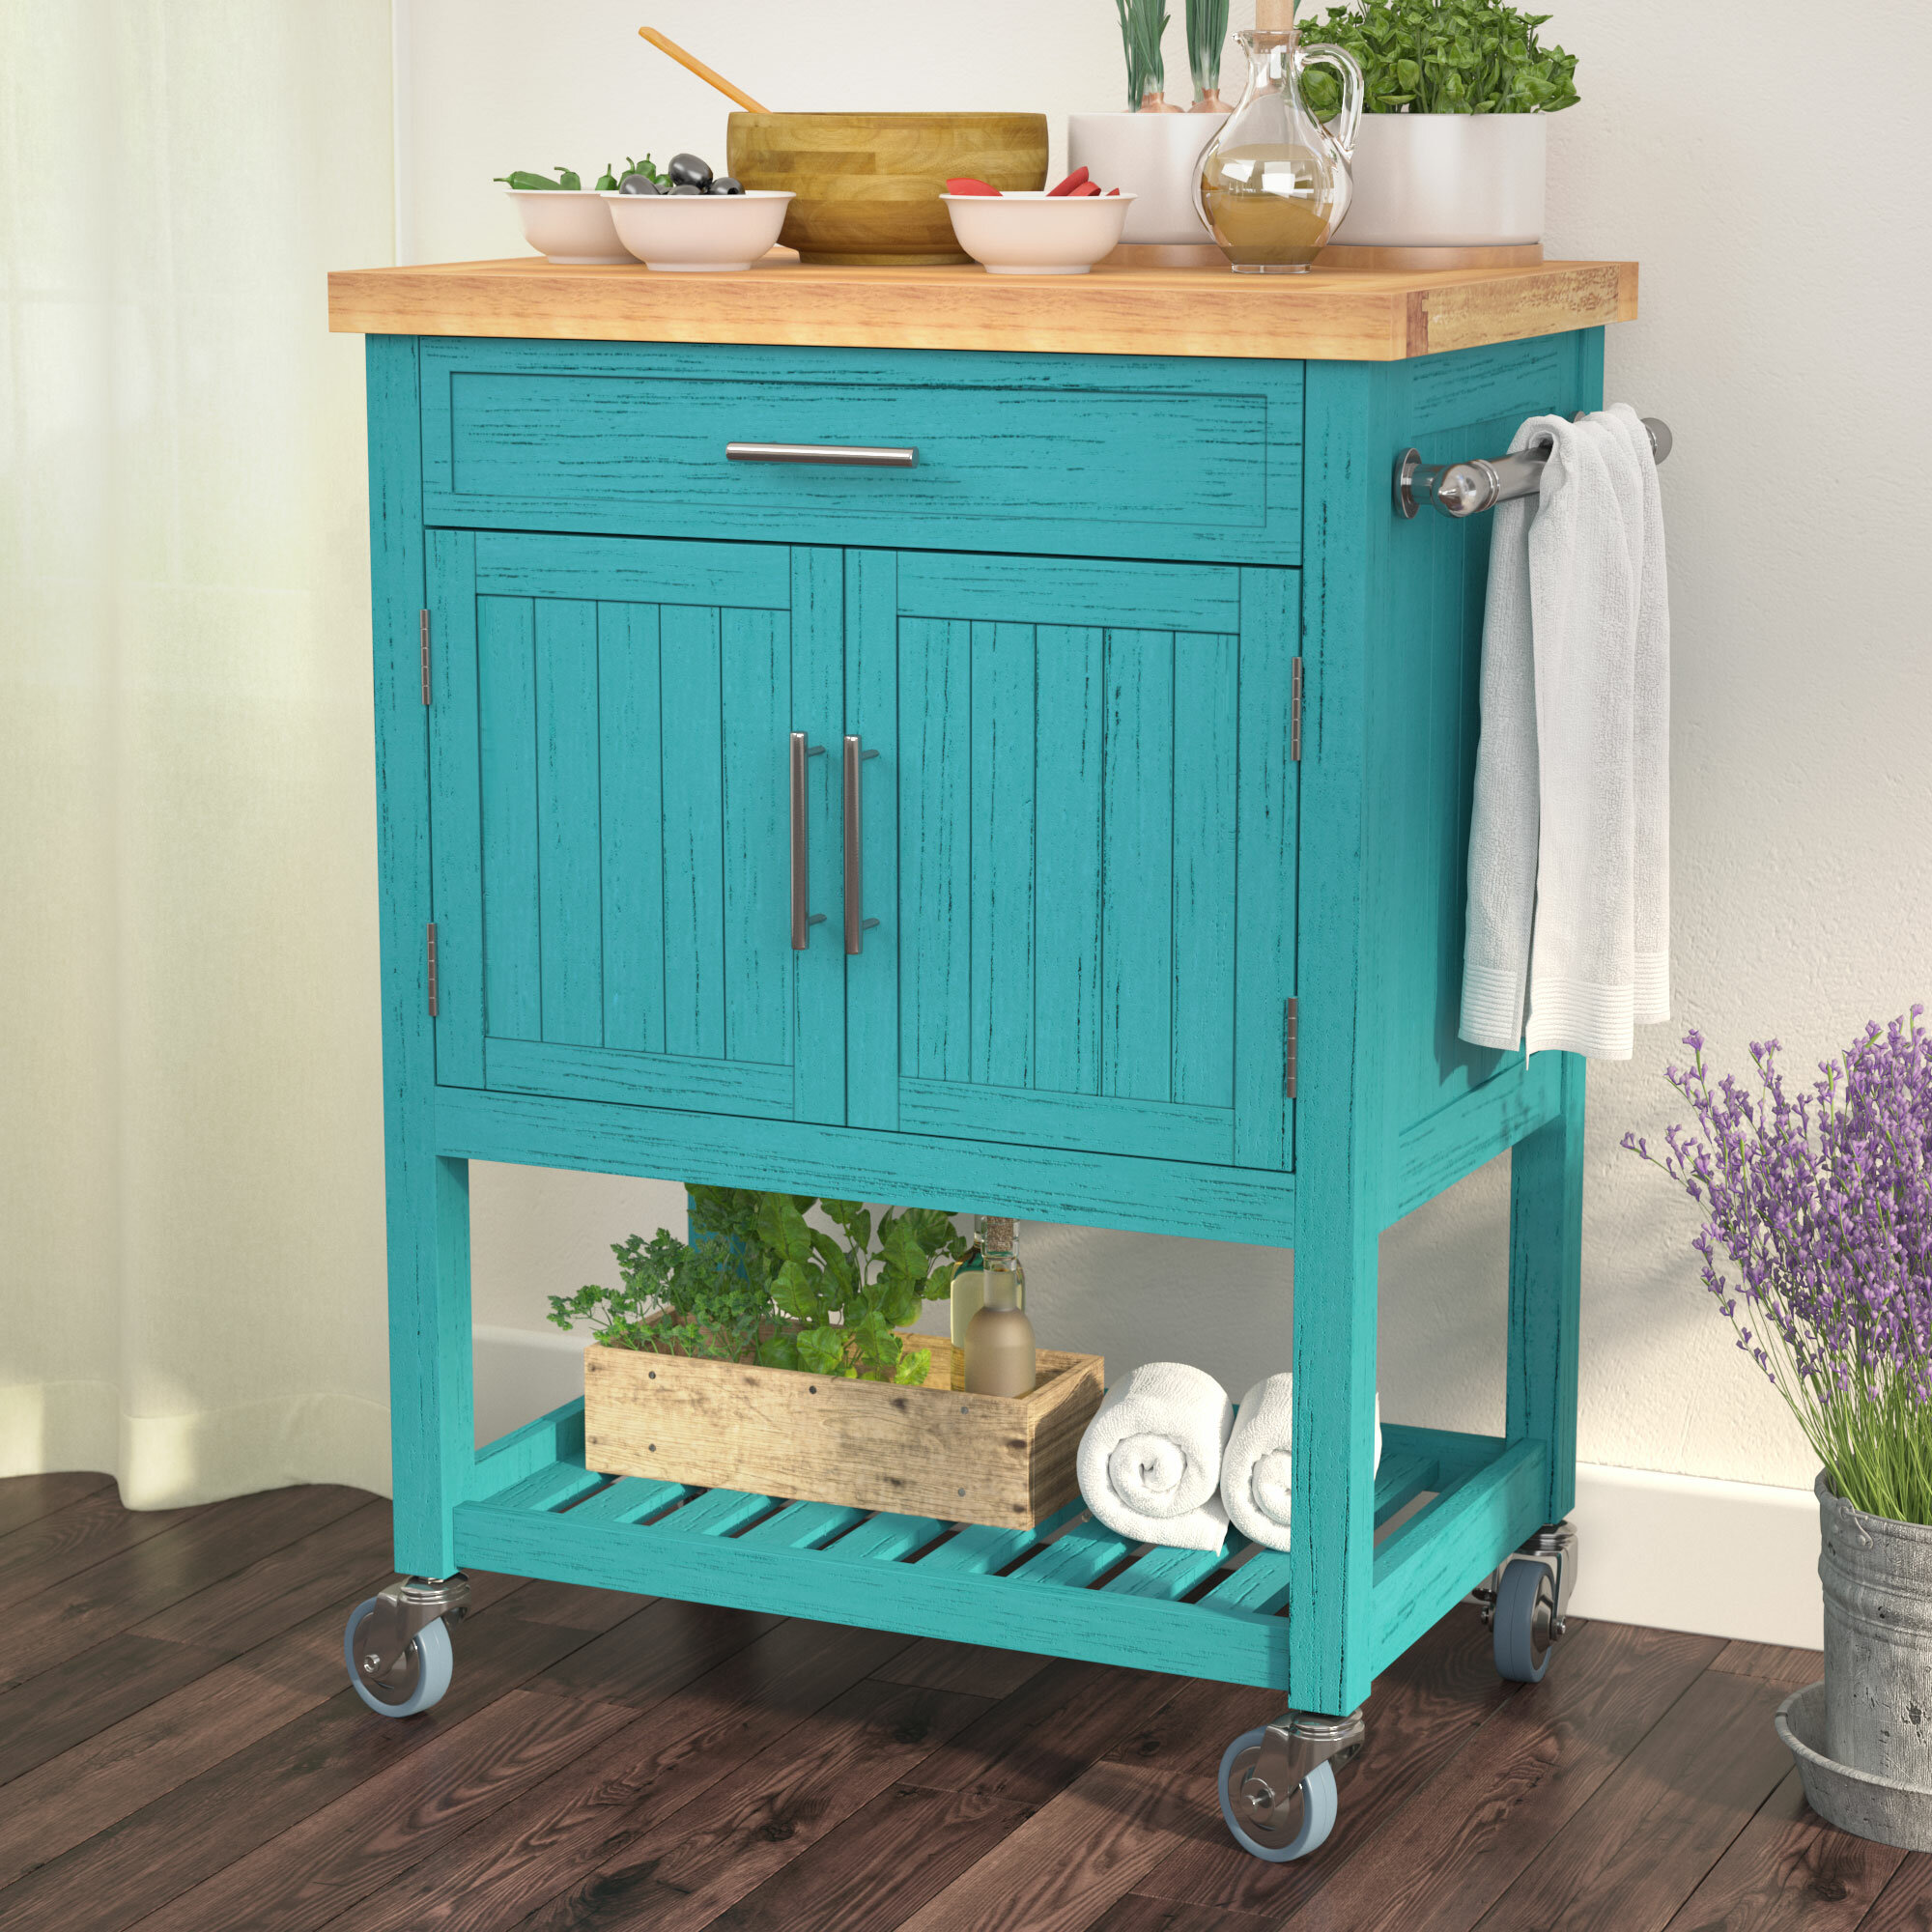 Highland Dunes Seepa Kitchen Cart & Reviews | Wayfair